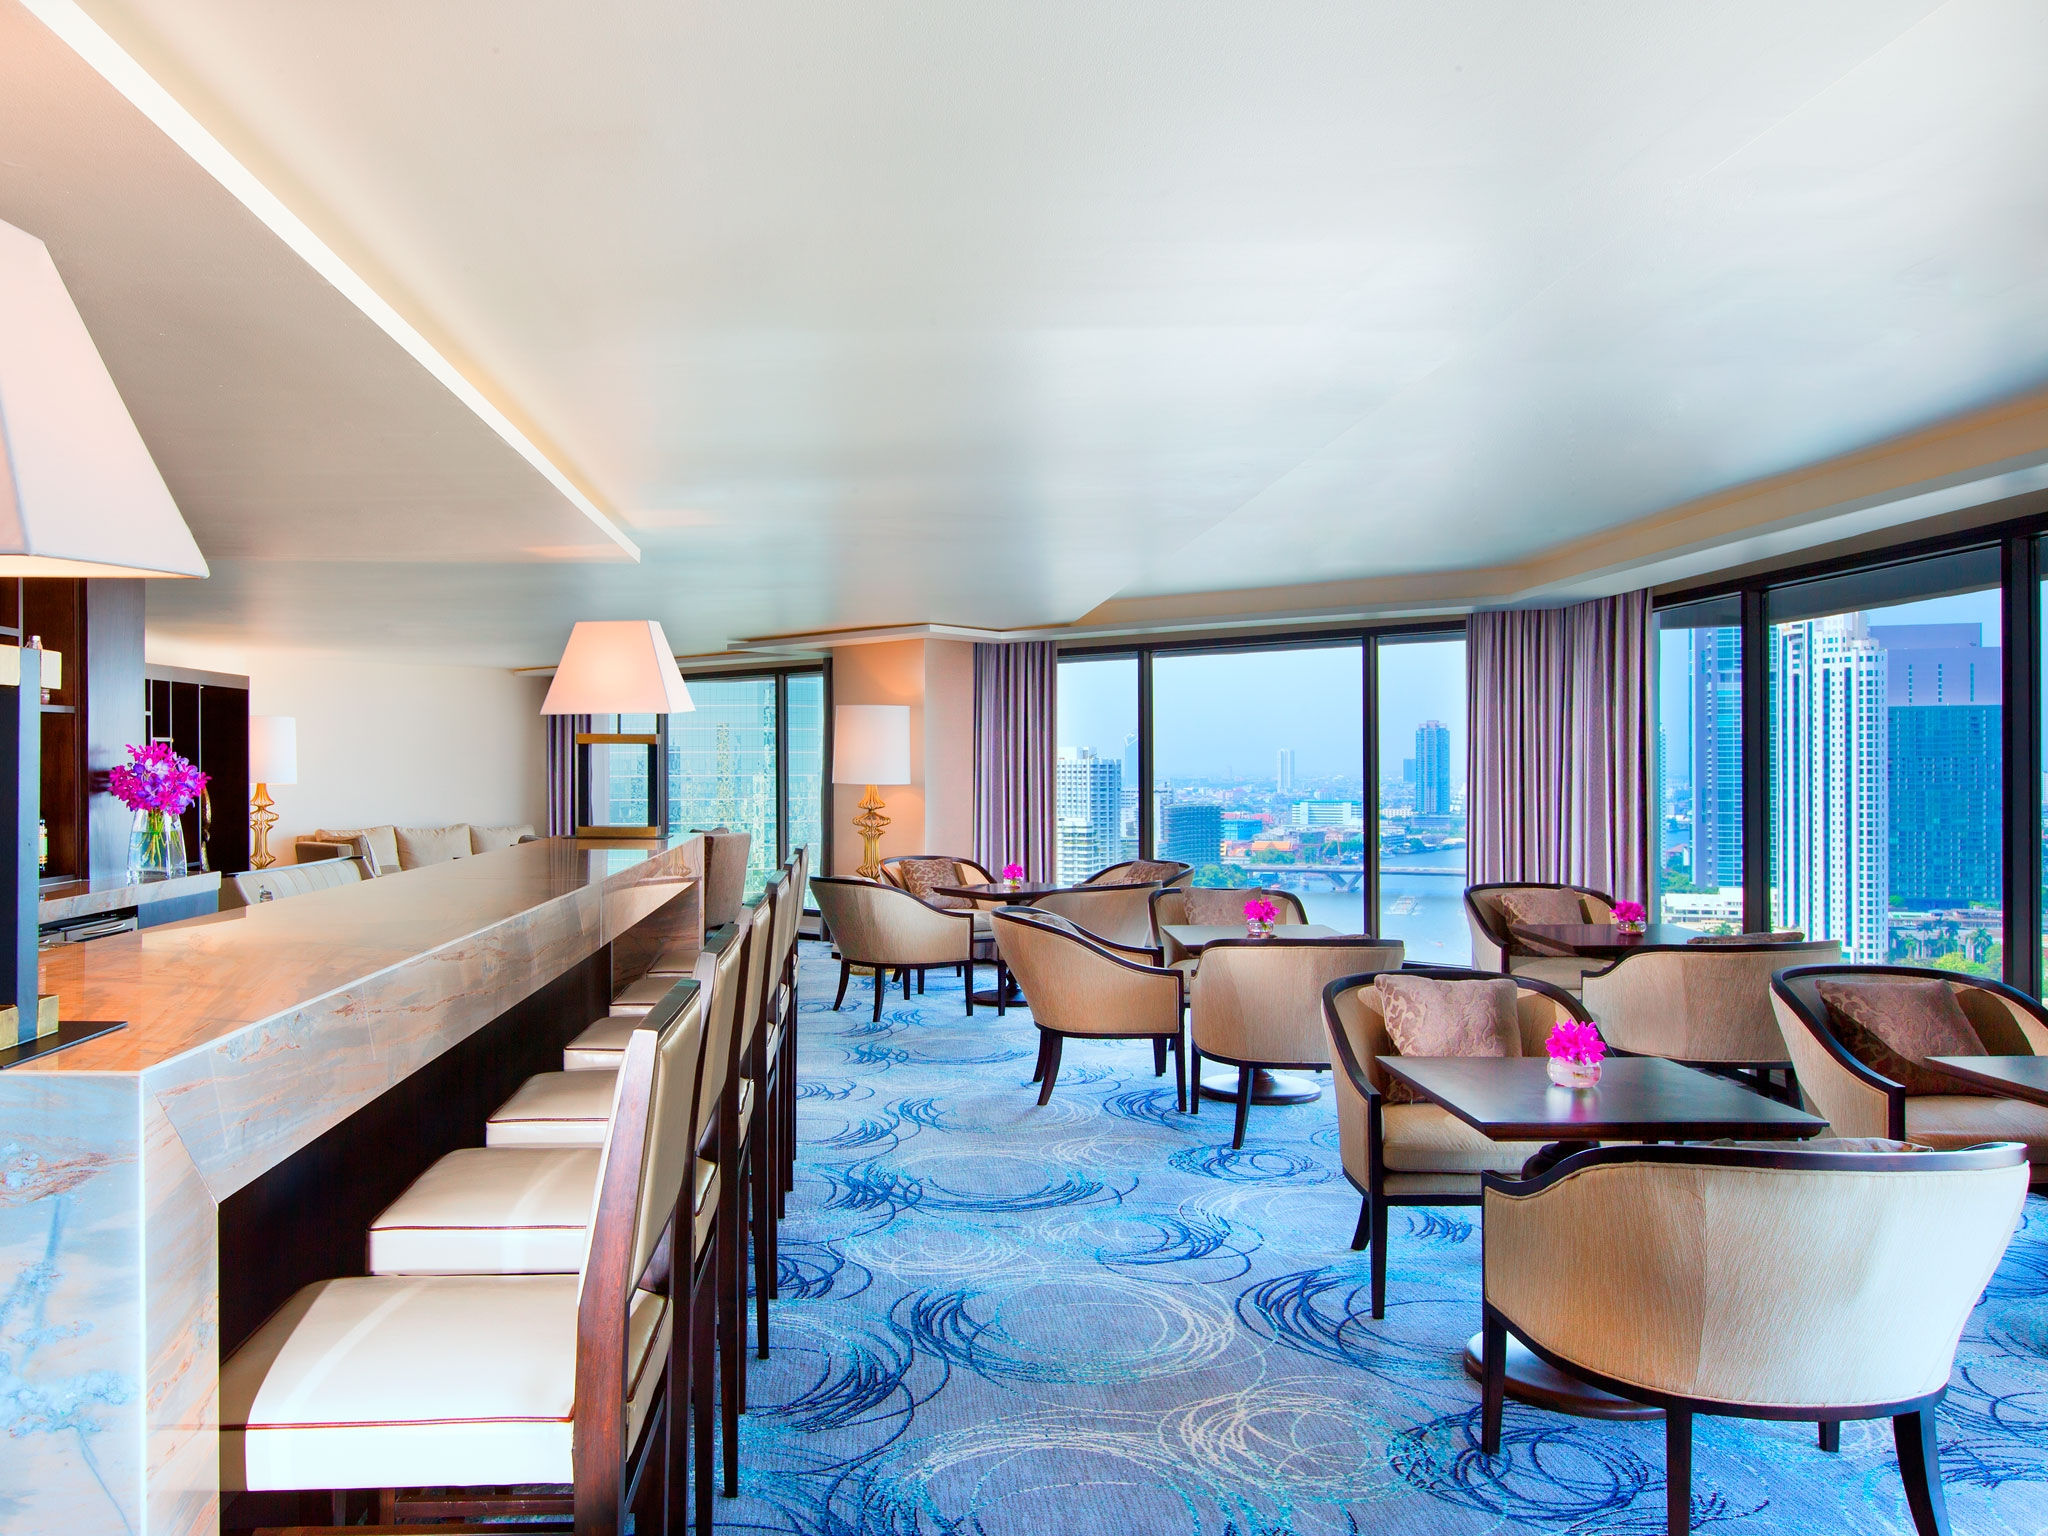 Sheraton Club - Royal Orchid Sheraton Hotel & Tower Bangkok